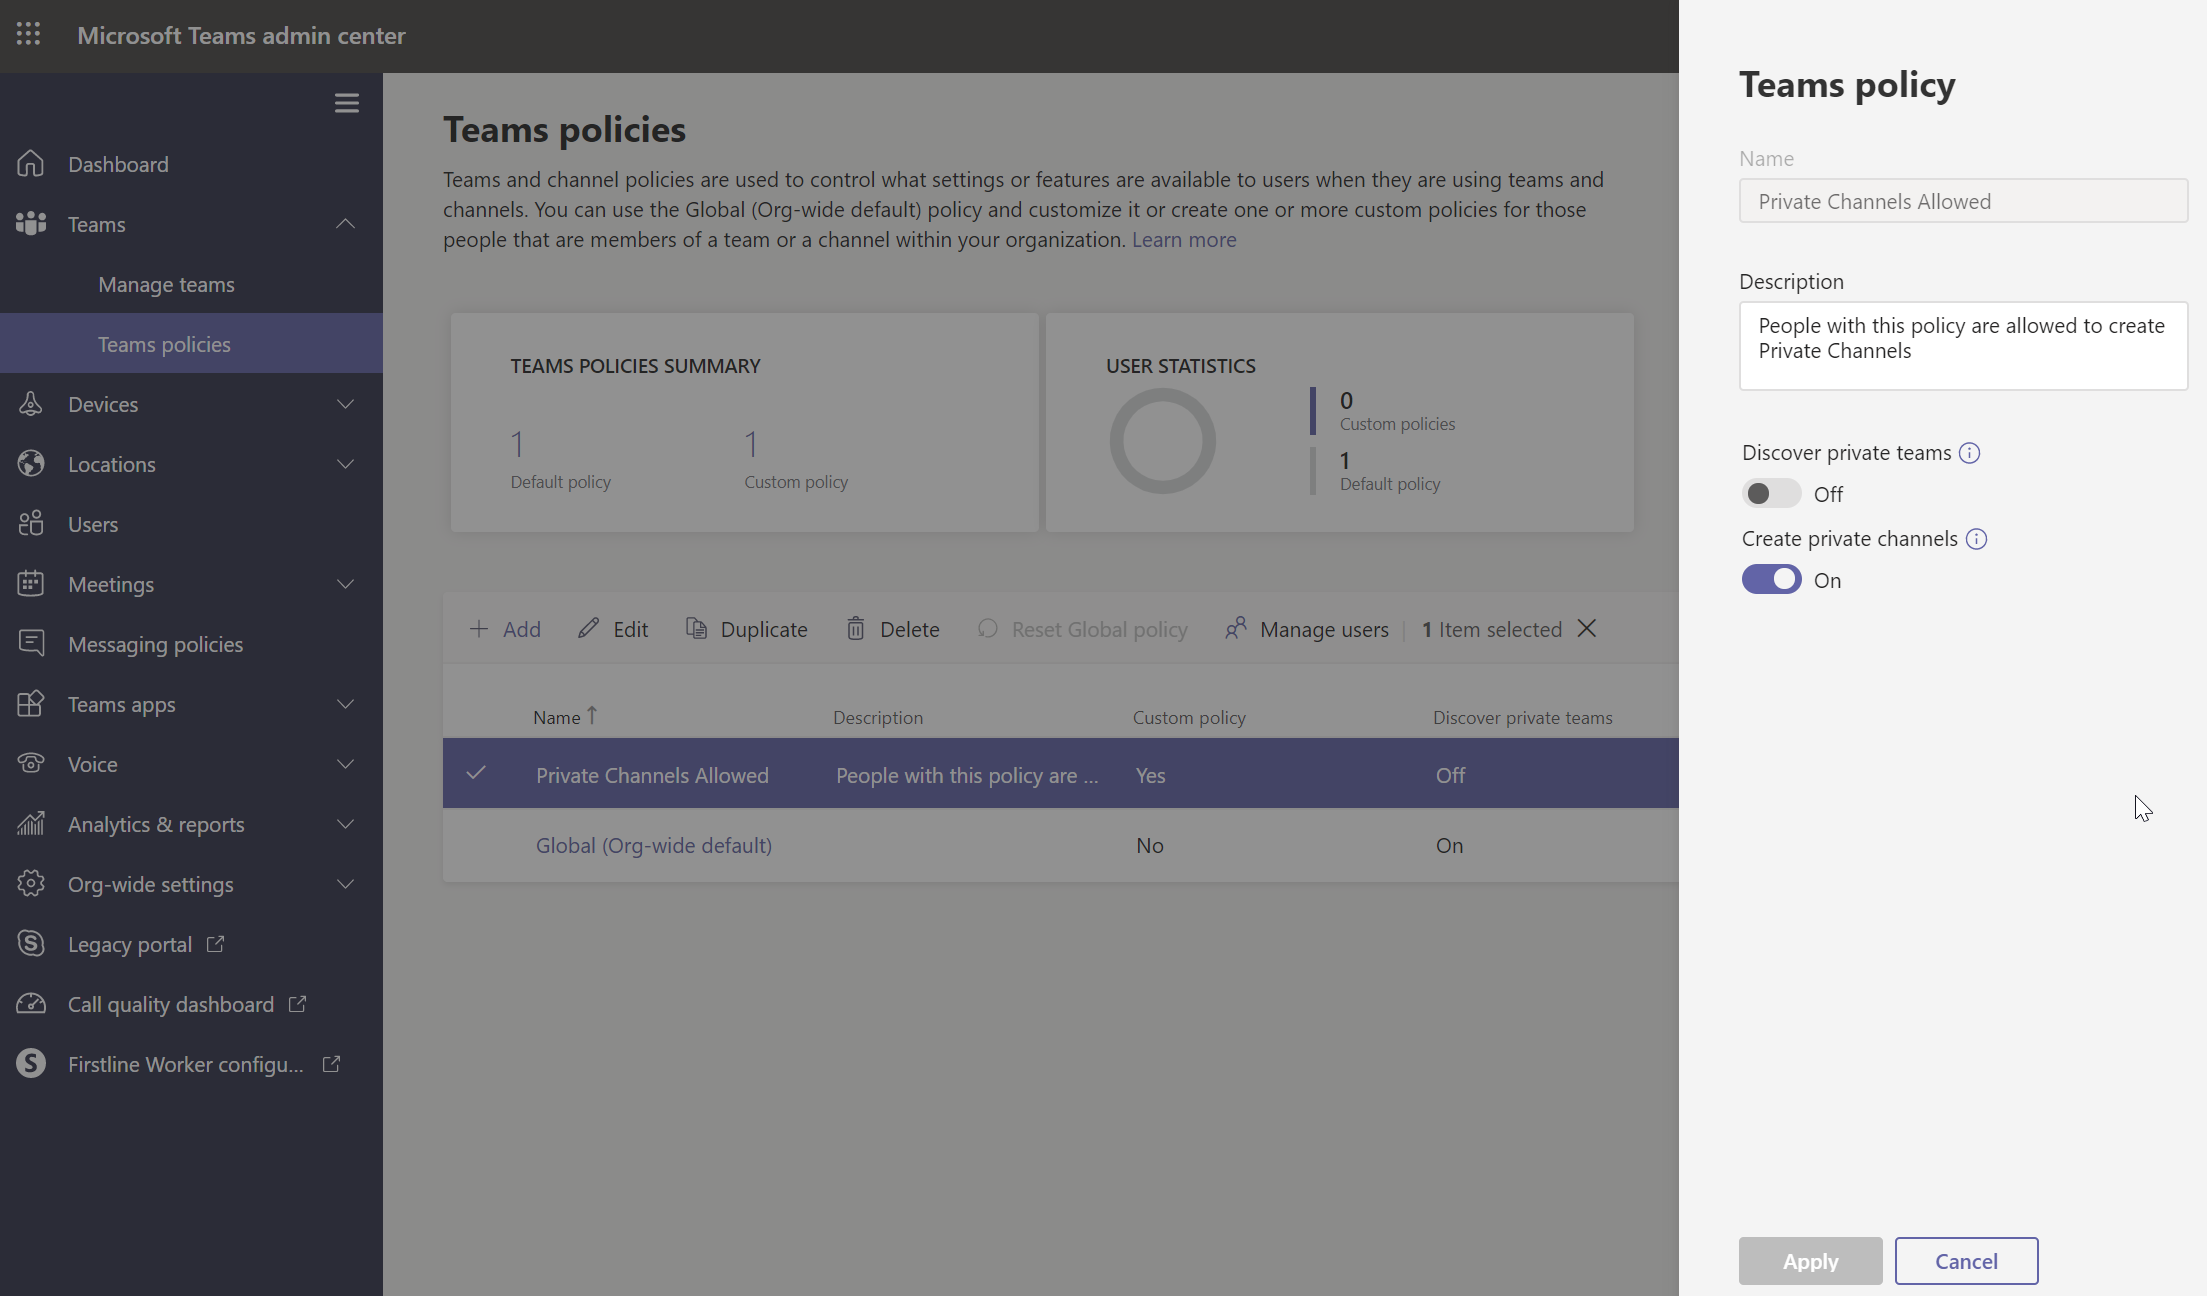 Private channel settings in Microsoft Teams